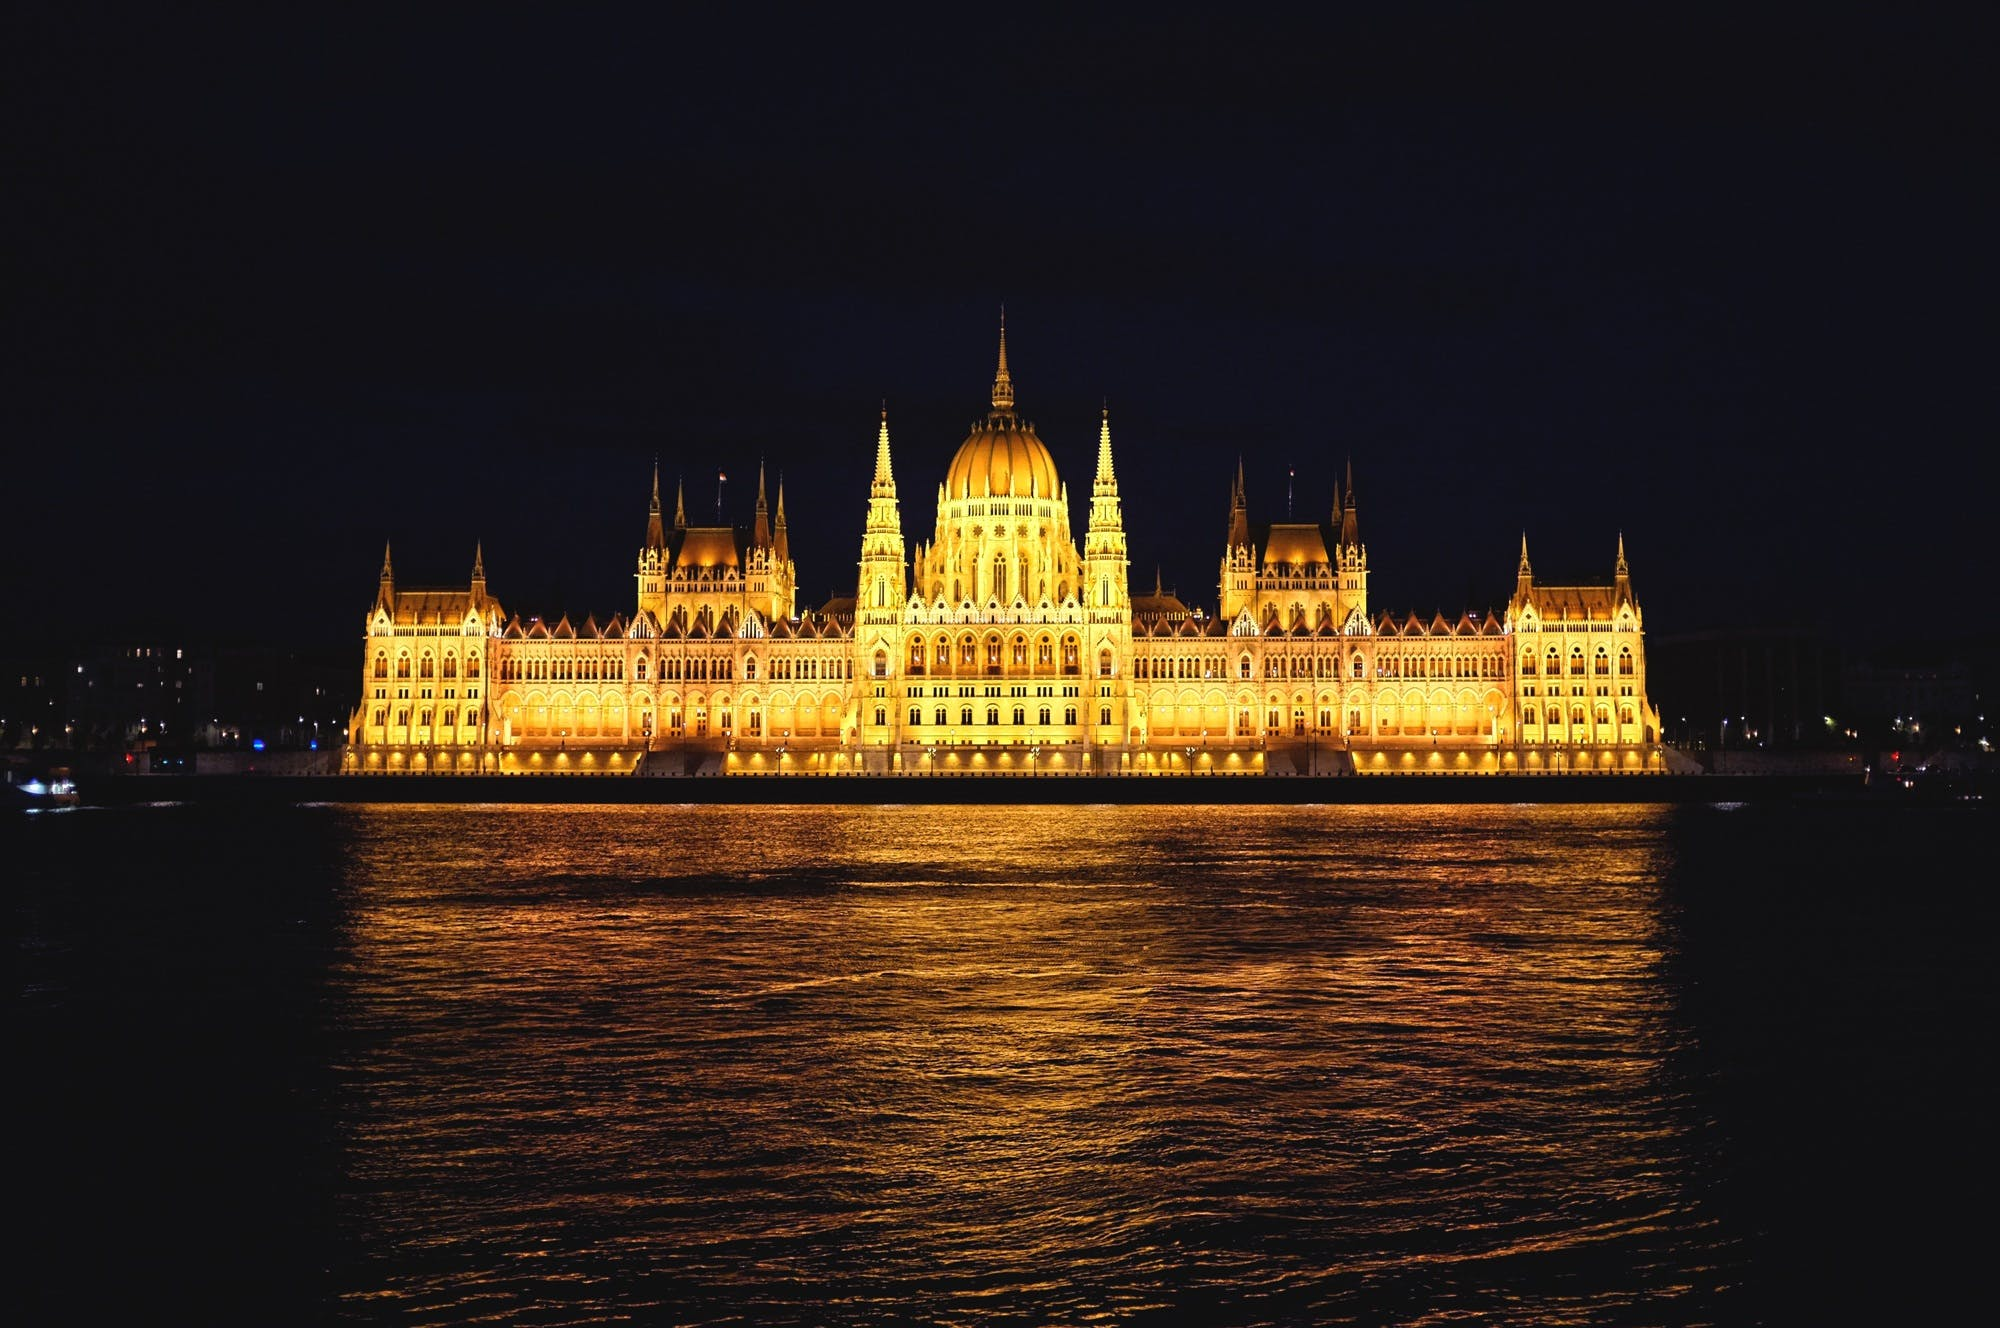 Yellow Castle Near Body of Water at Night Time